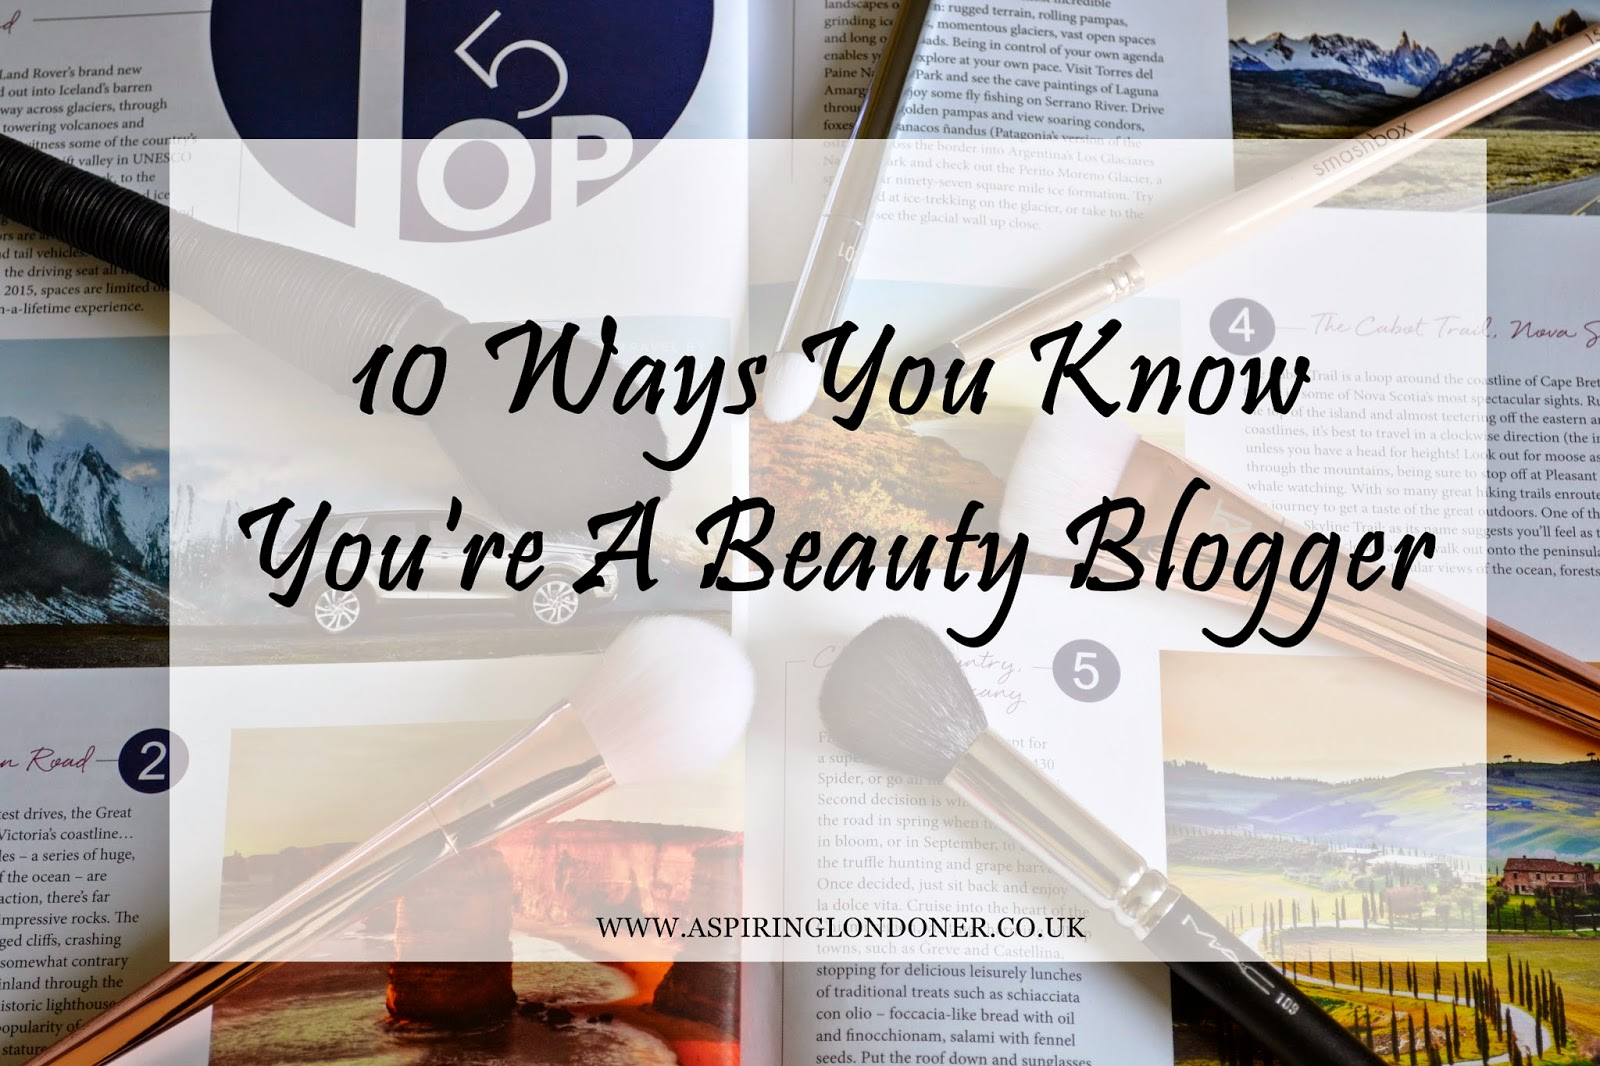 10 Ways You Know You're A Beauty Blogger - Aspiring Londoner